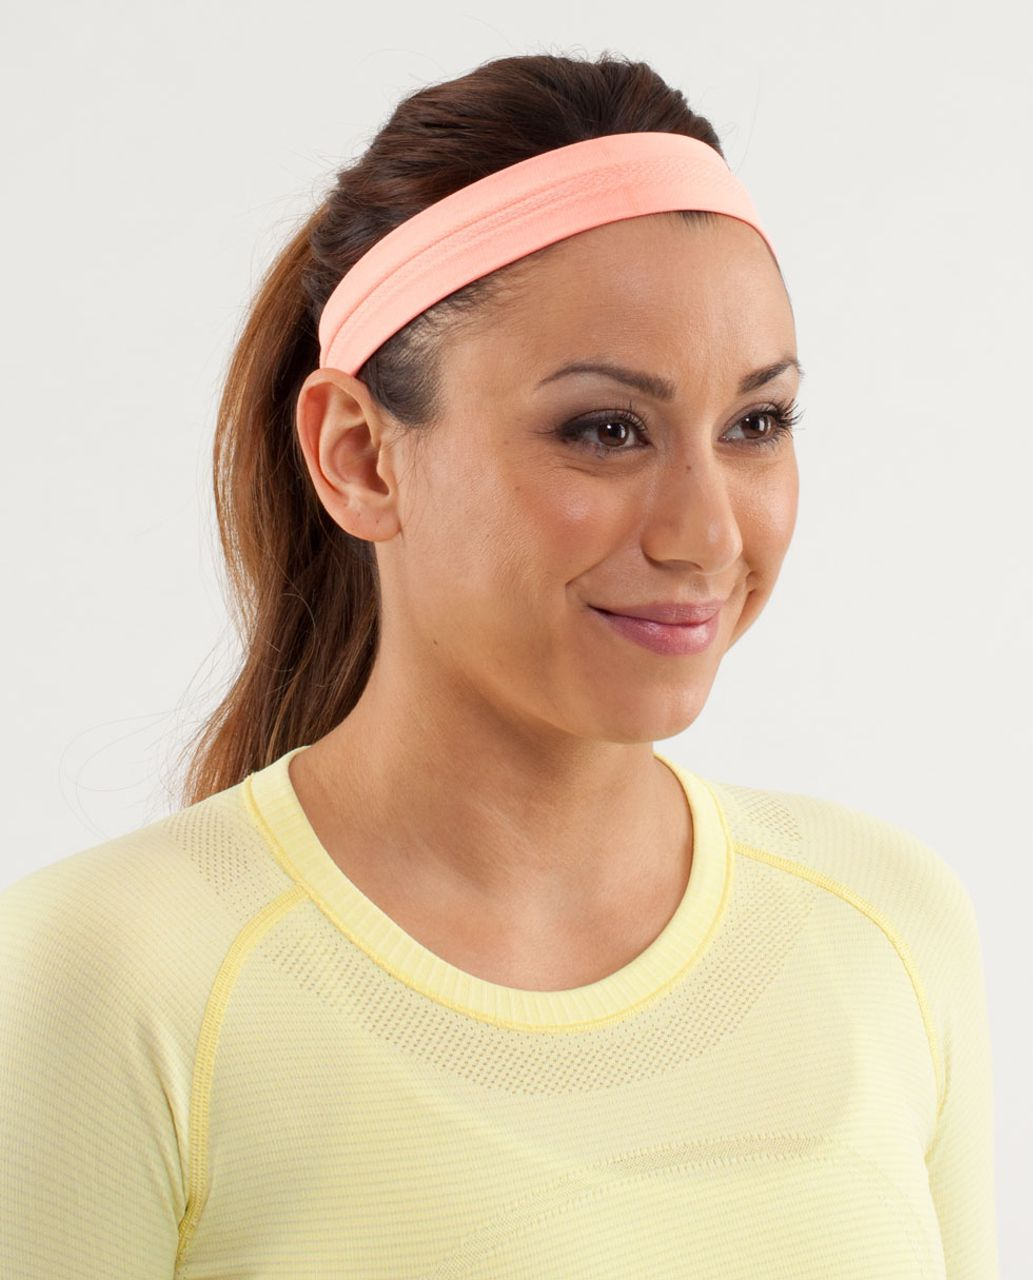 b567f8a7 Lululemon Swiftly Headband - Pop Orange - lulu fanatics